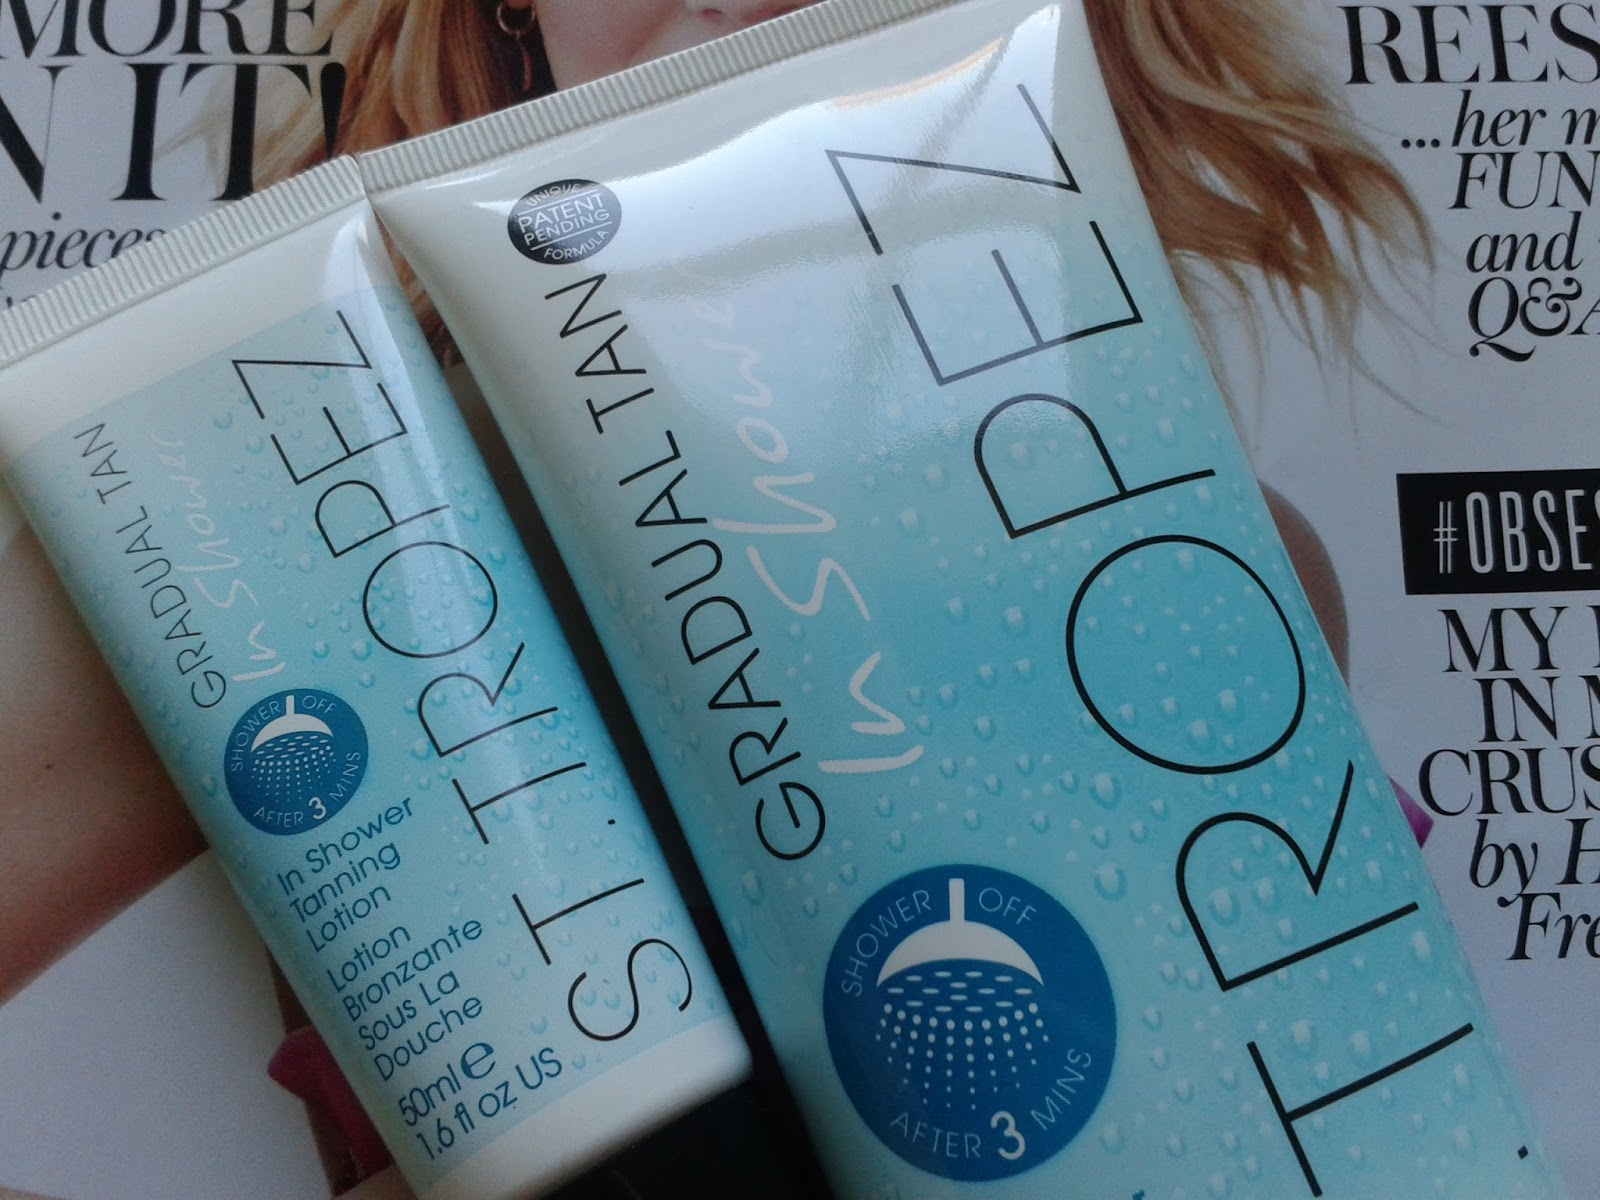 st tropez gradual tan in shower recension